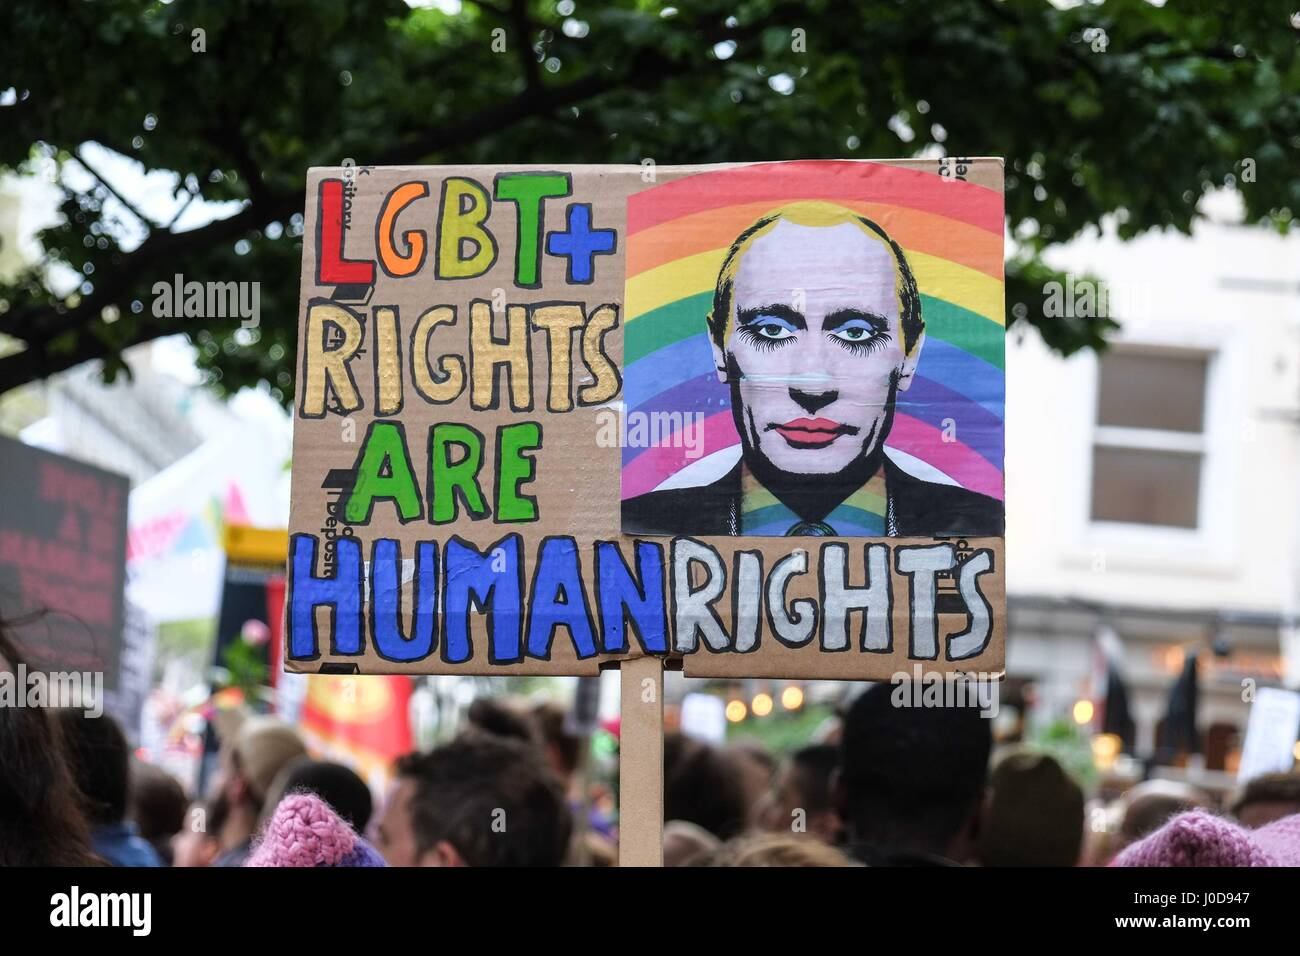 London: 12th April 2017.LGBT Community protest outside the ...